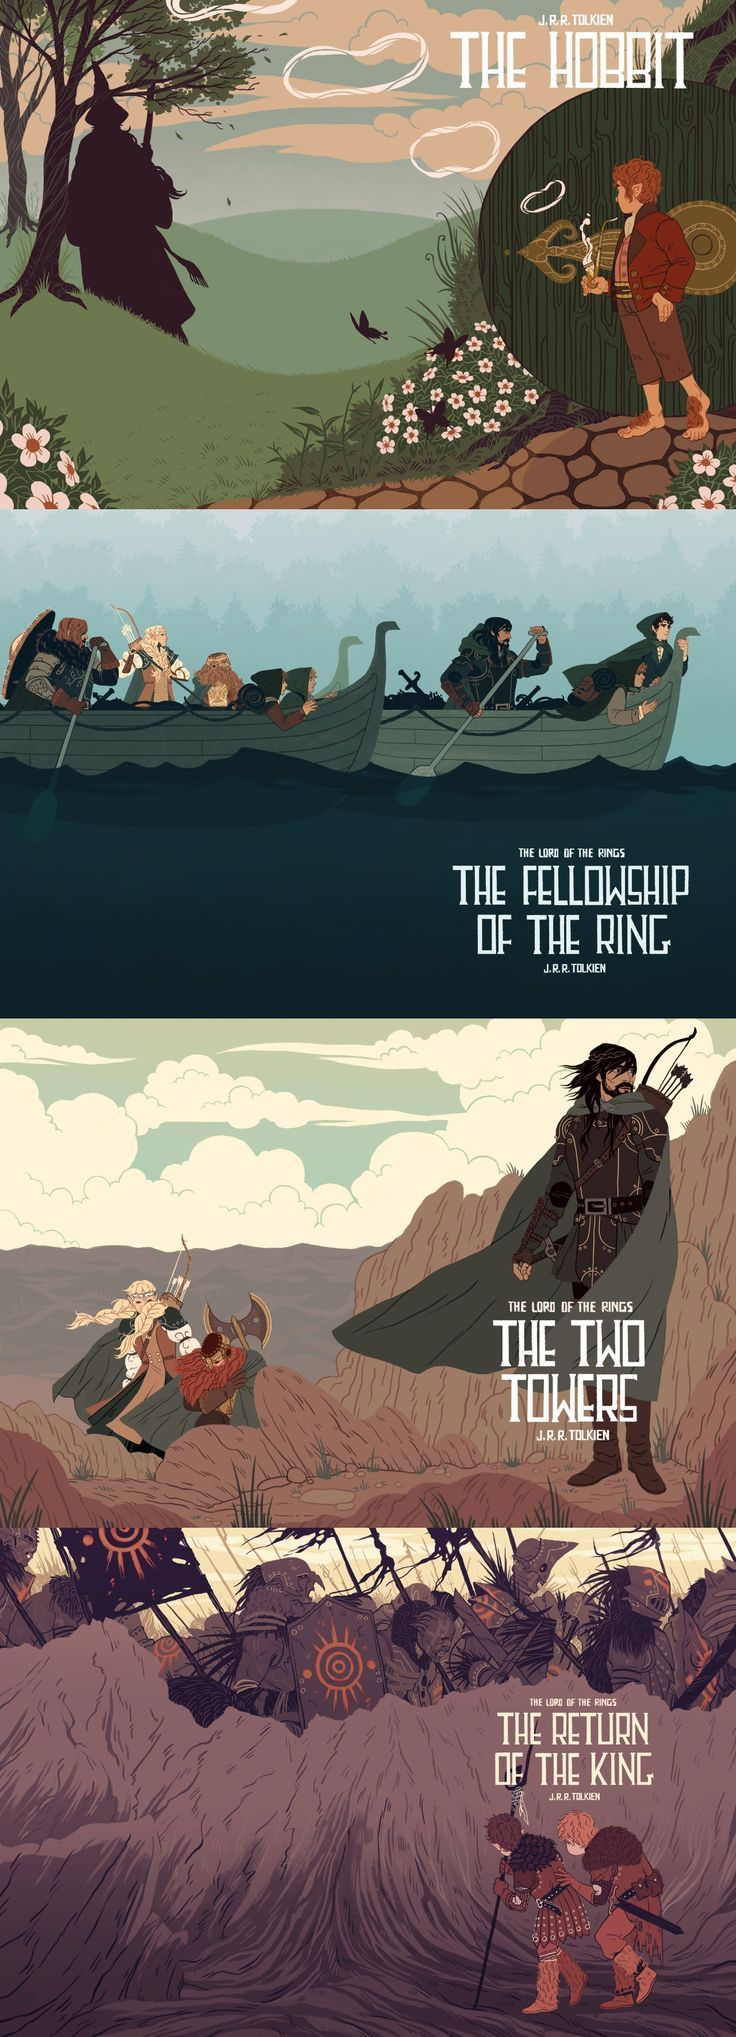 The Hobbit and The Lord of the Rings by Sara Kipin #lordoftherings #hobbit #fanart (Geek Stuff Nerd)